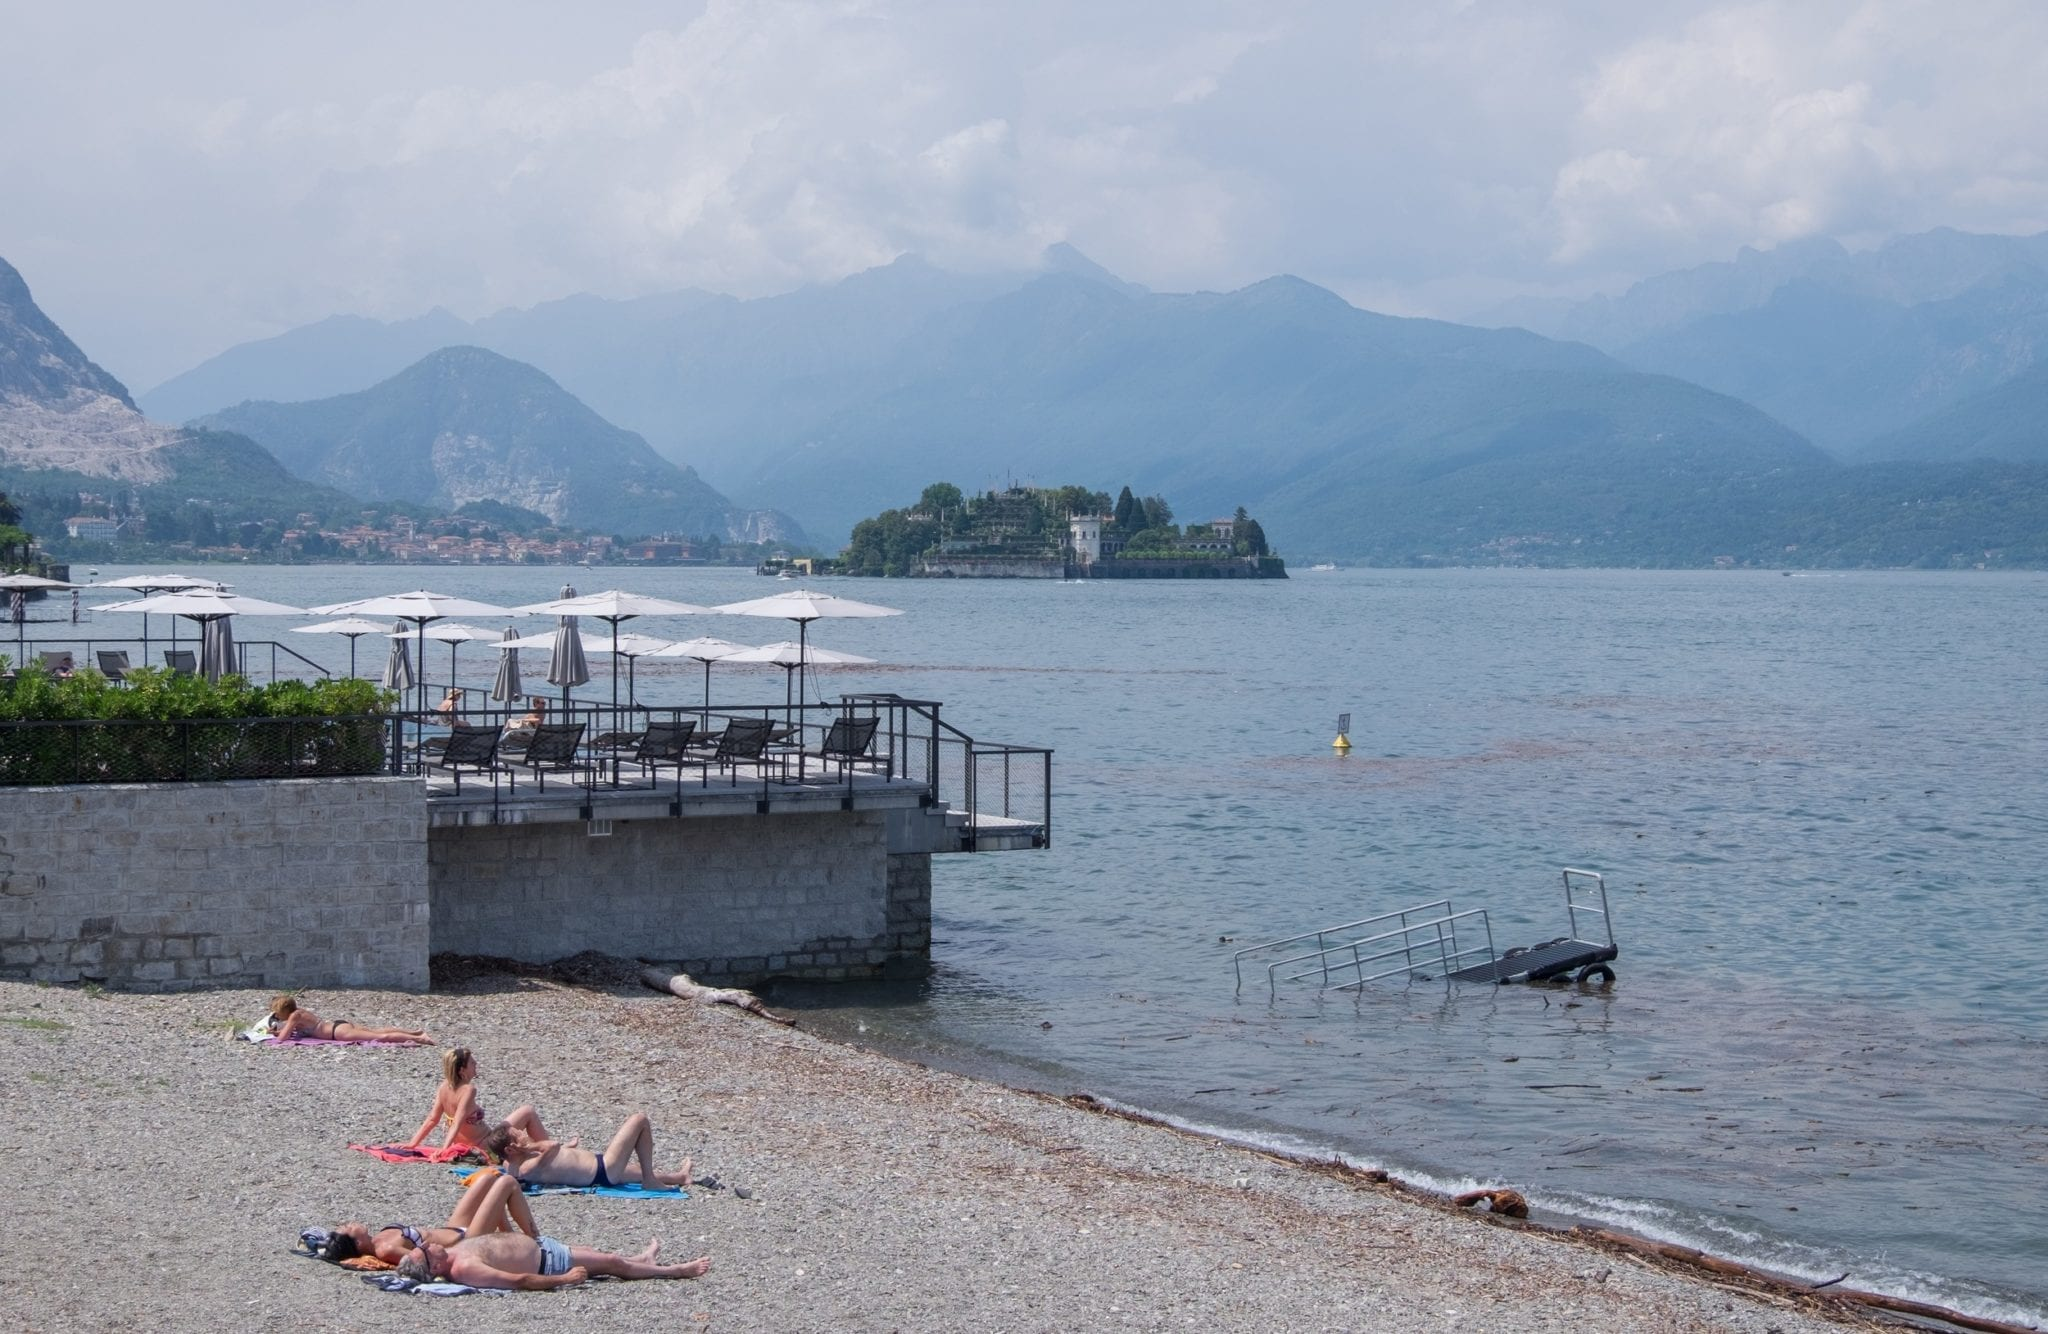 A man and a woman sunbathe on a gray rocky beach overlooking Lake Maggiore, which has an island in the distance and mountains rising up behind it underneath a cloudy sky.